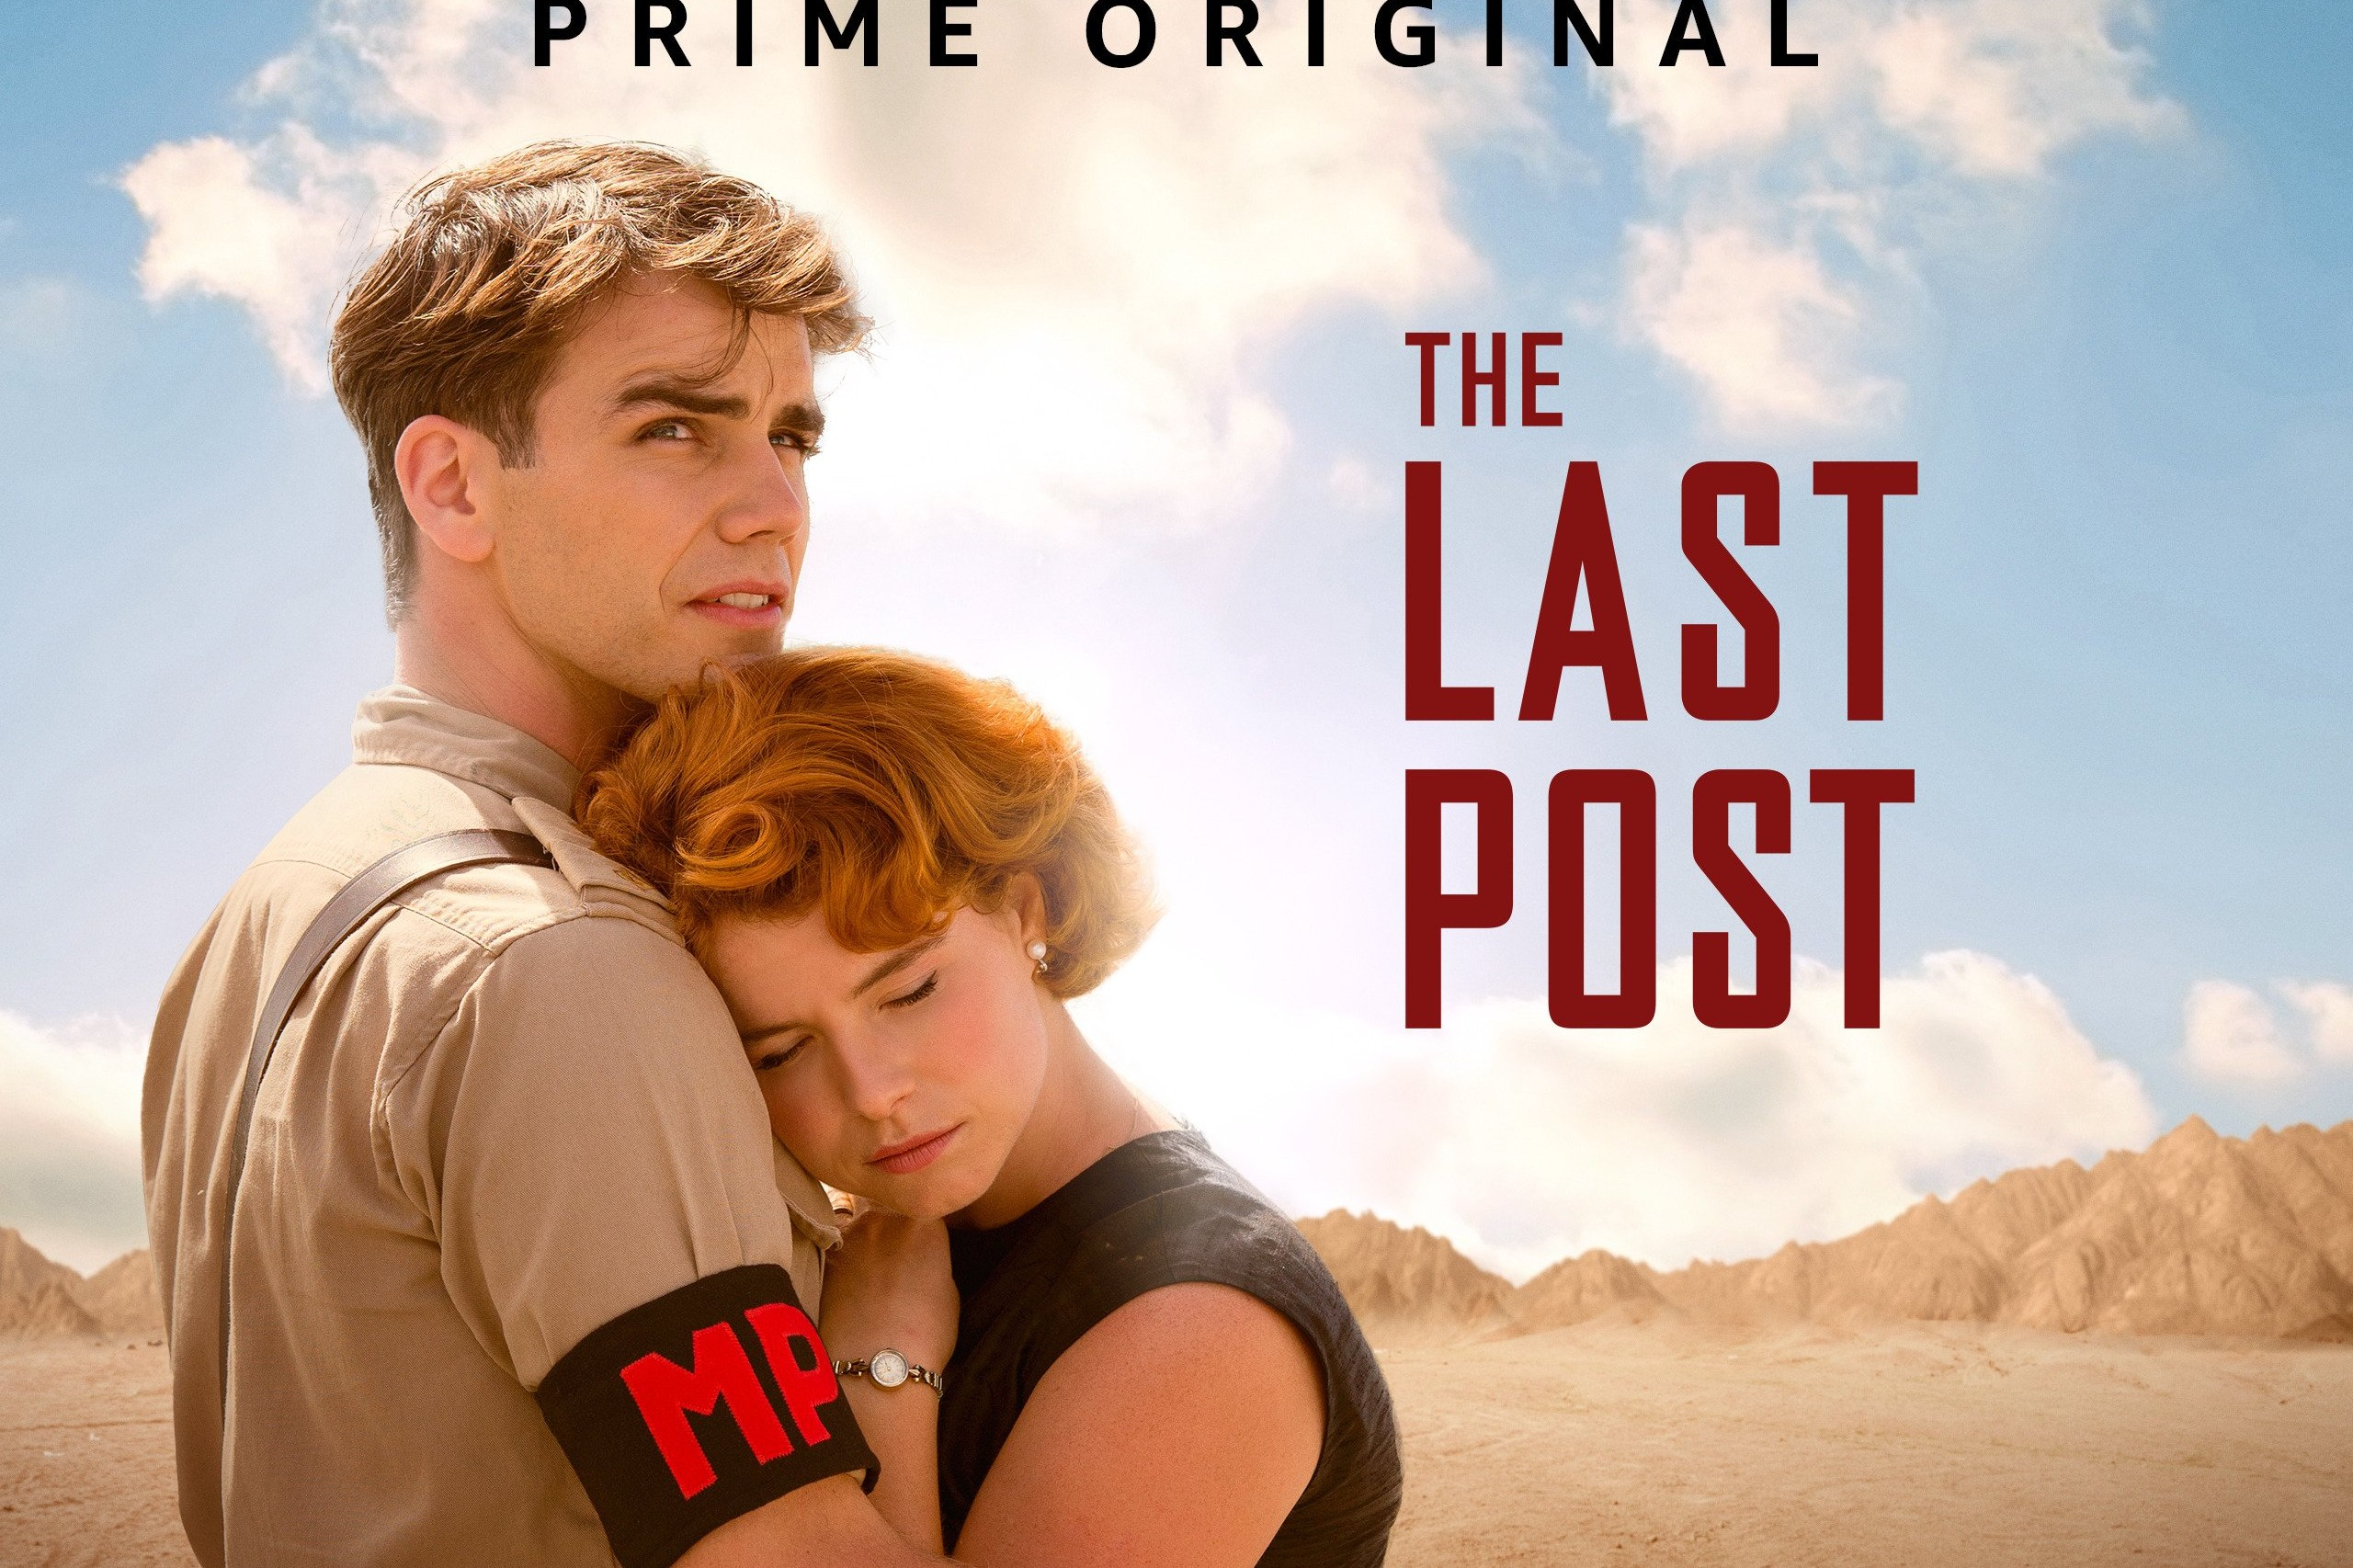 Stream all episodes of The Last Post on Amazon Prime